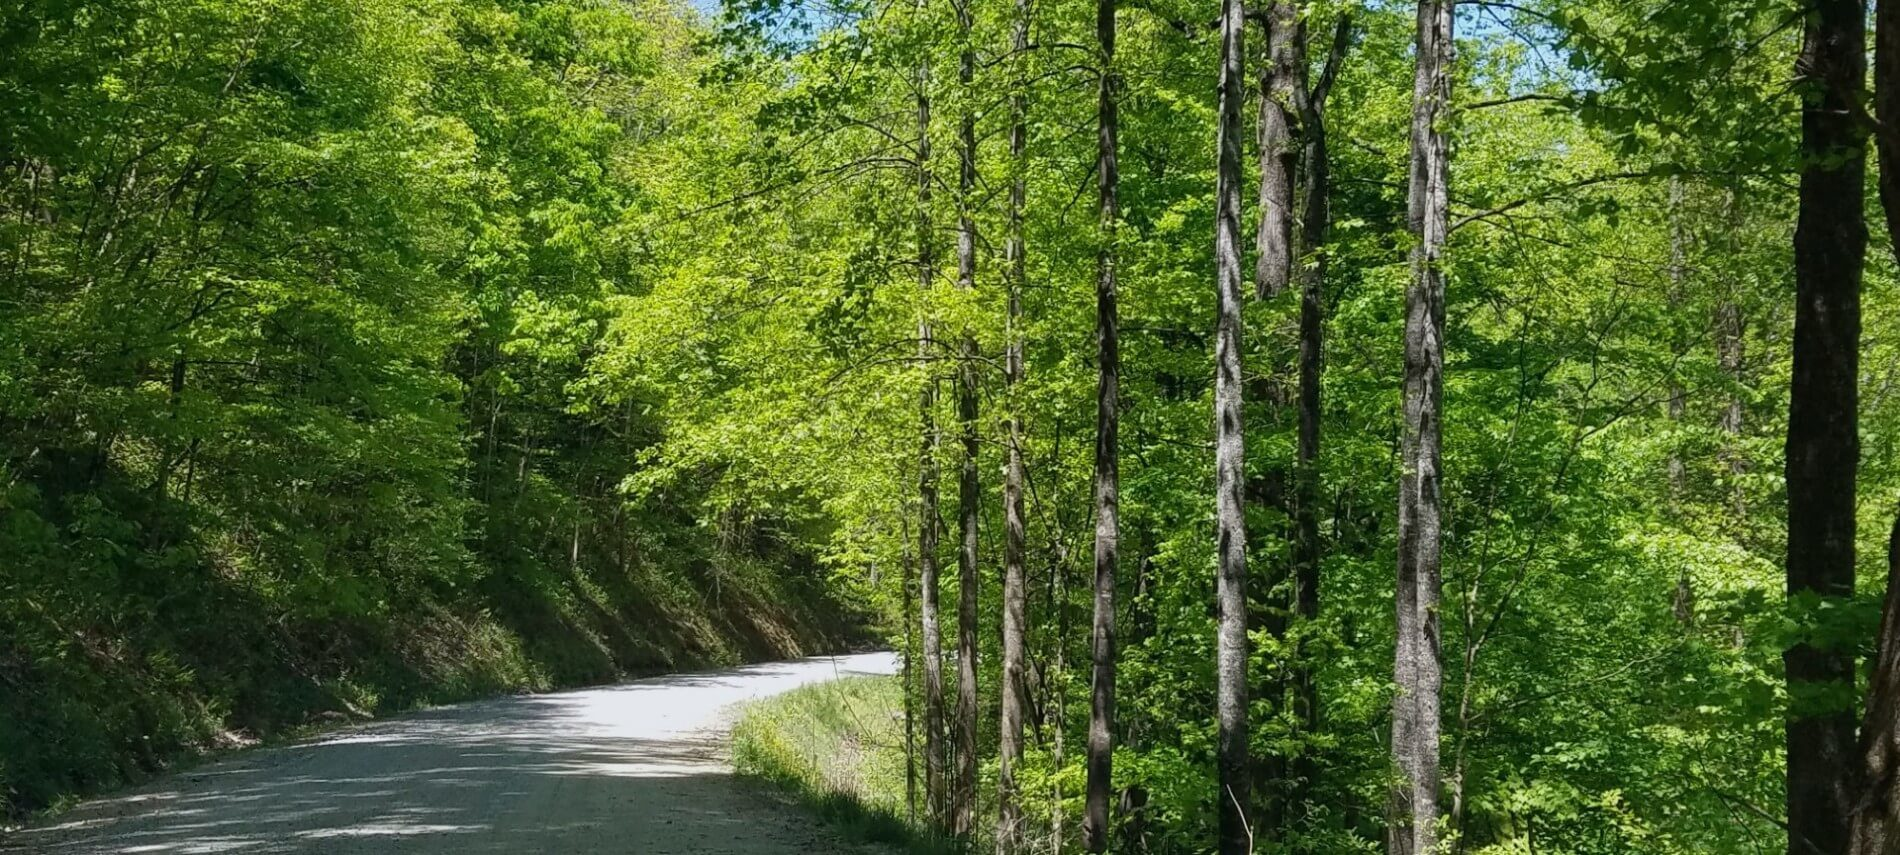 Springtime tree-lined rural road taking a curve